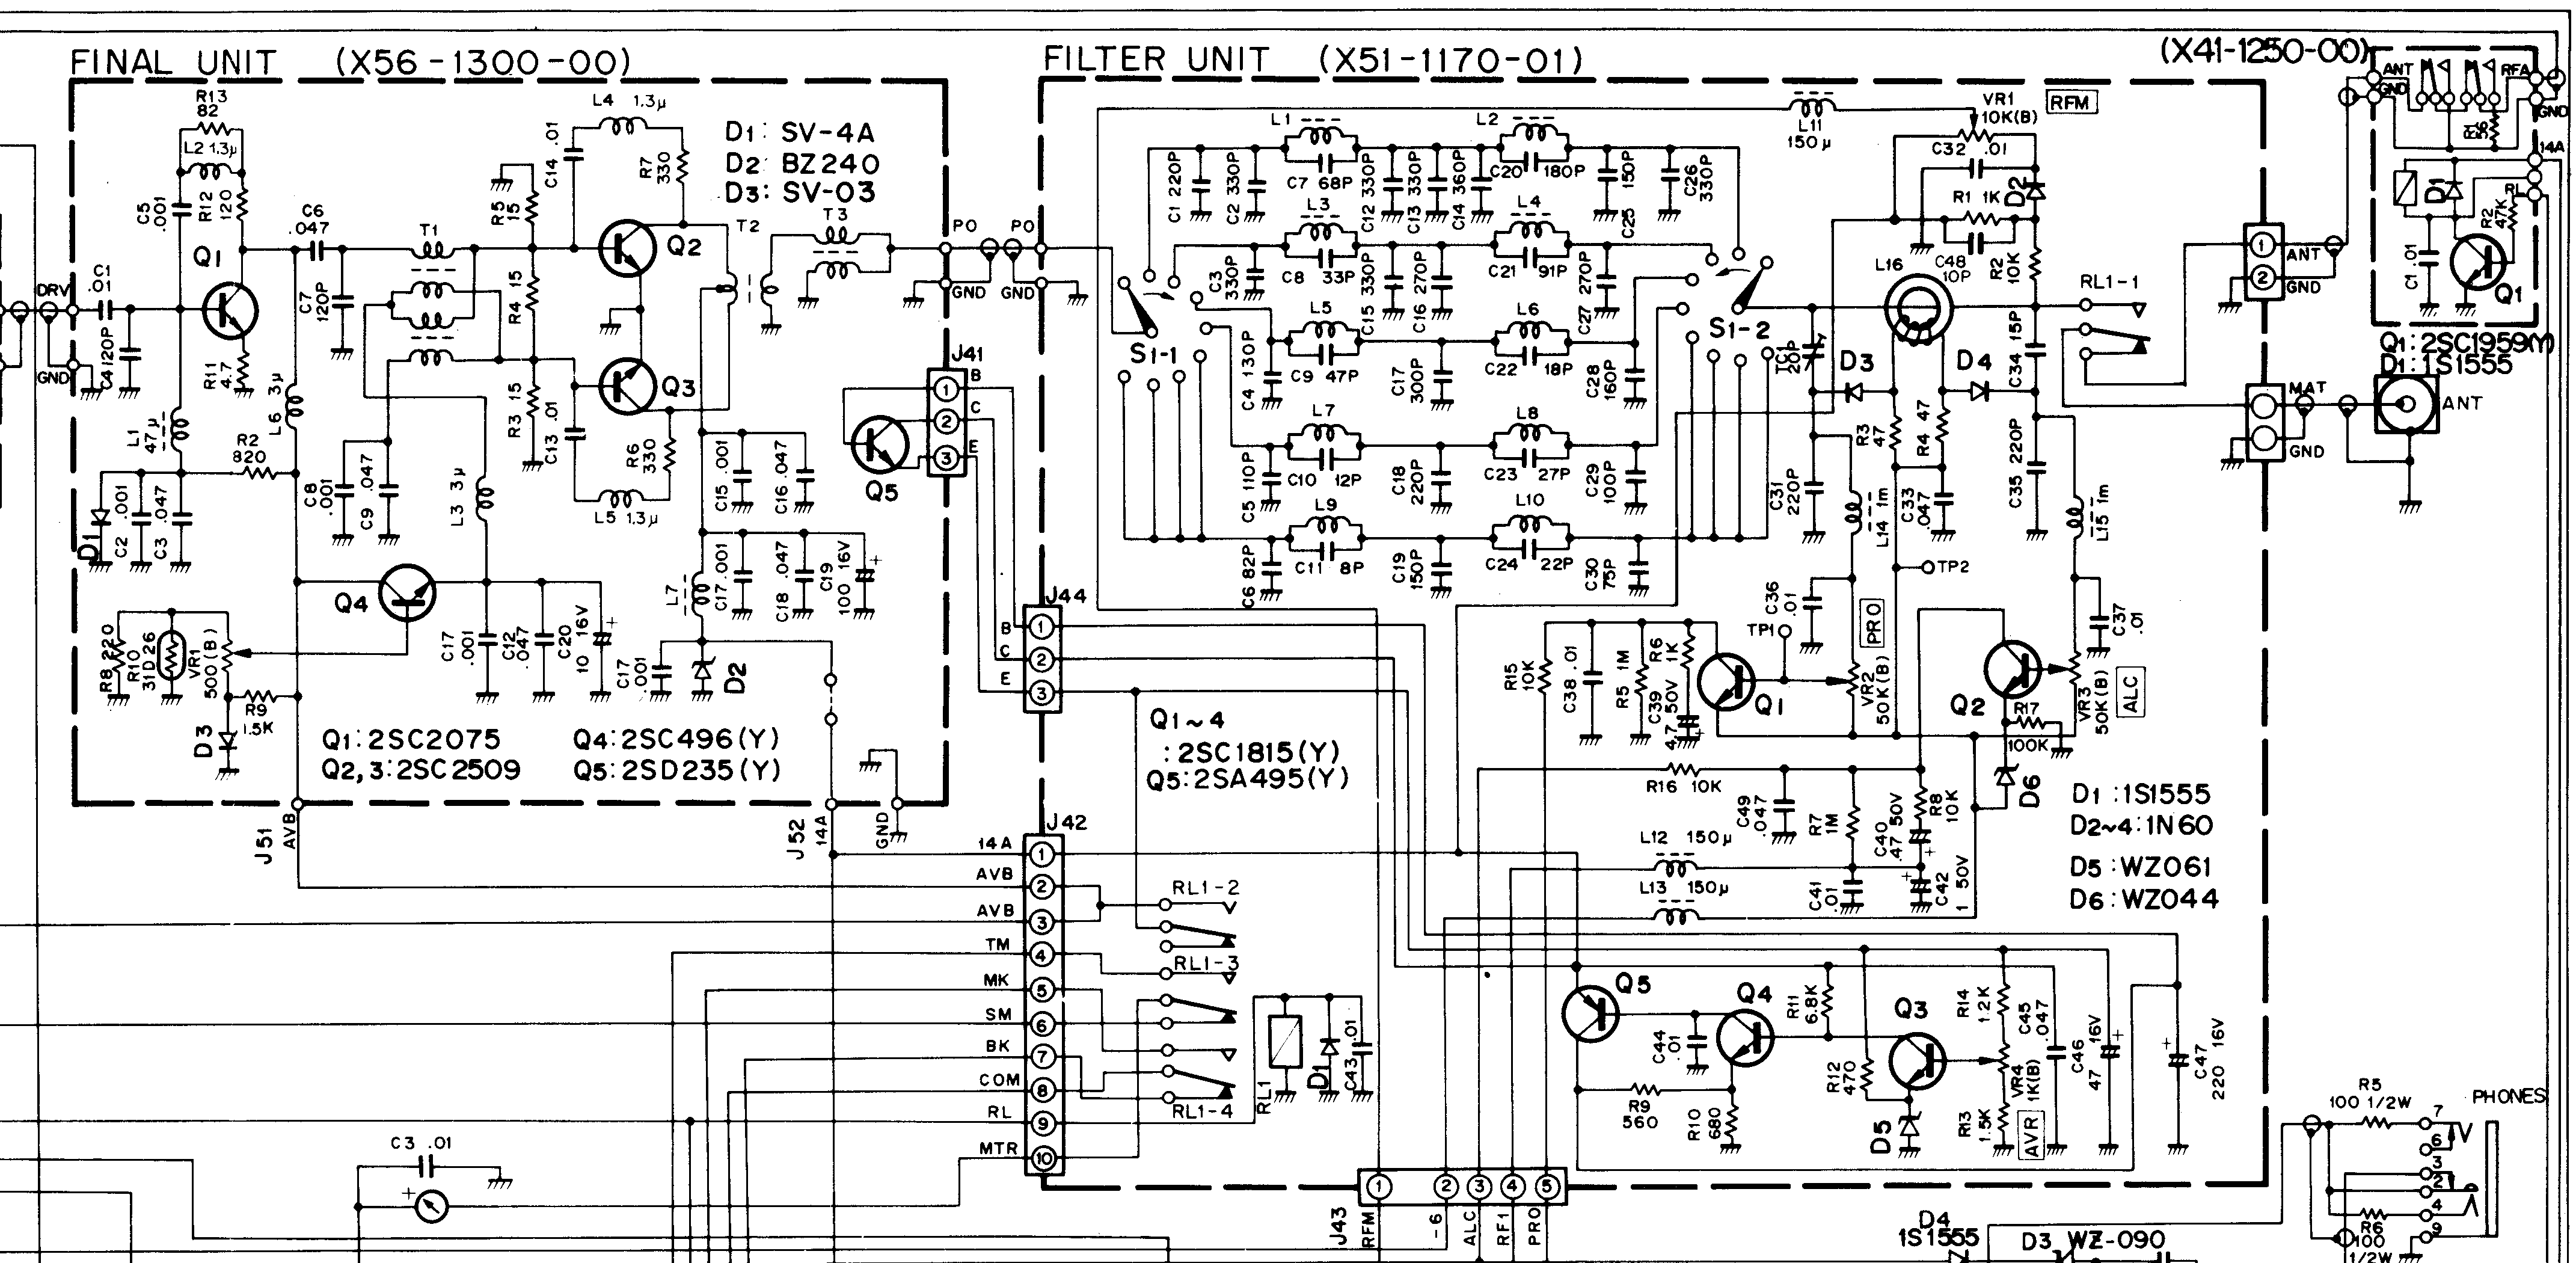 TS-120V: [Complete Schematic] [Filter+Final]